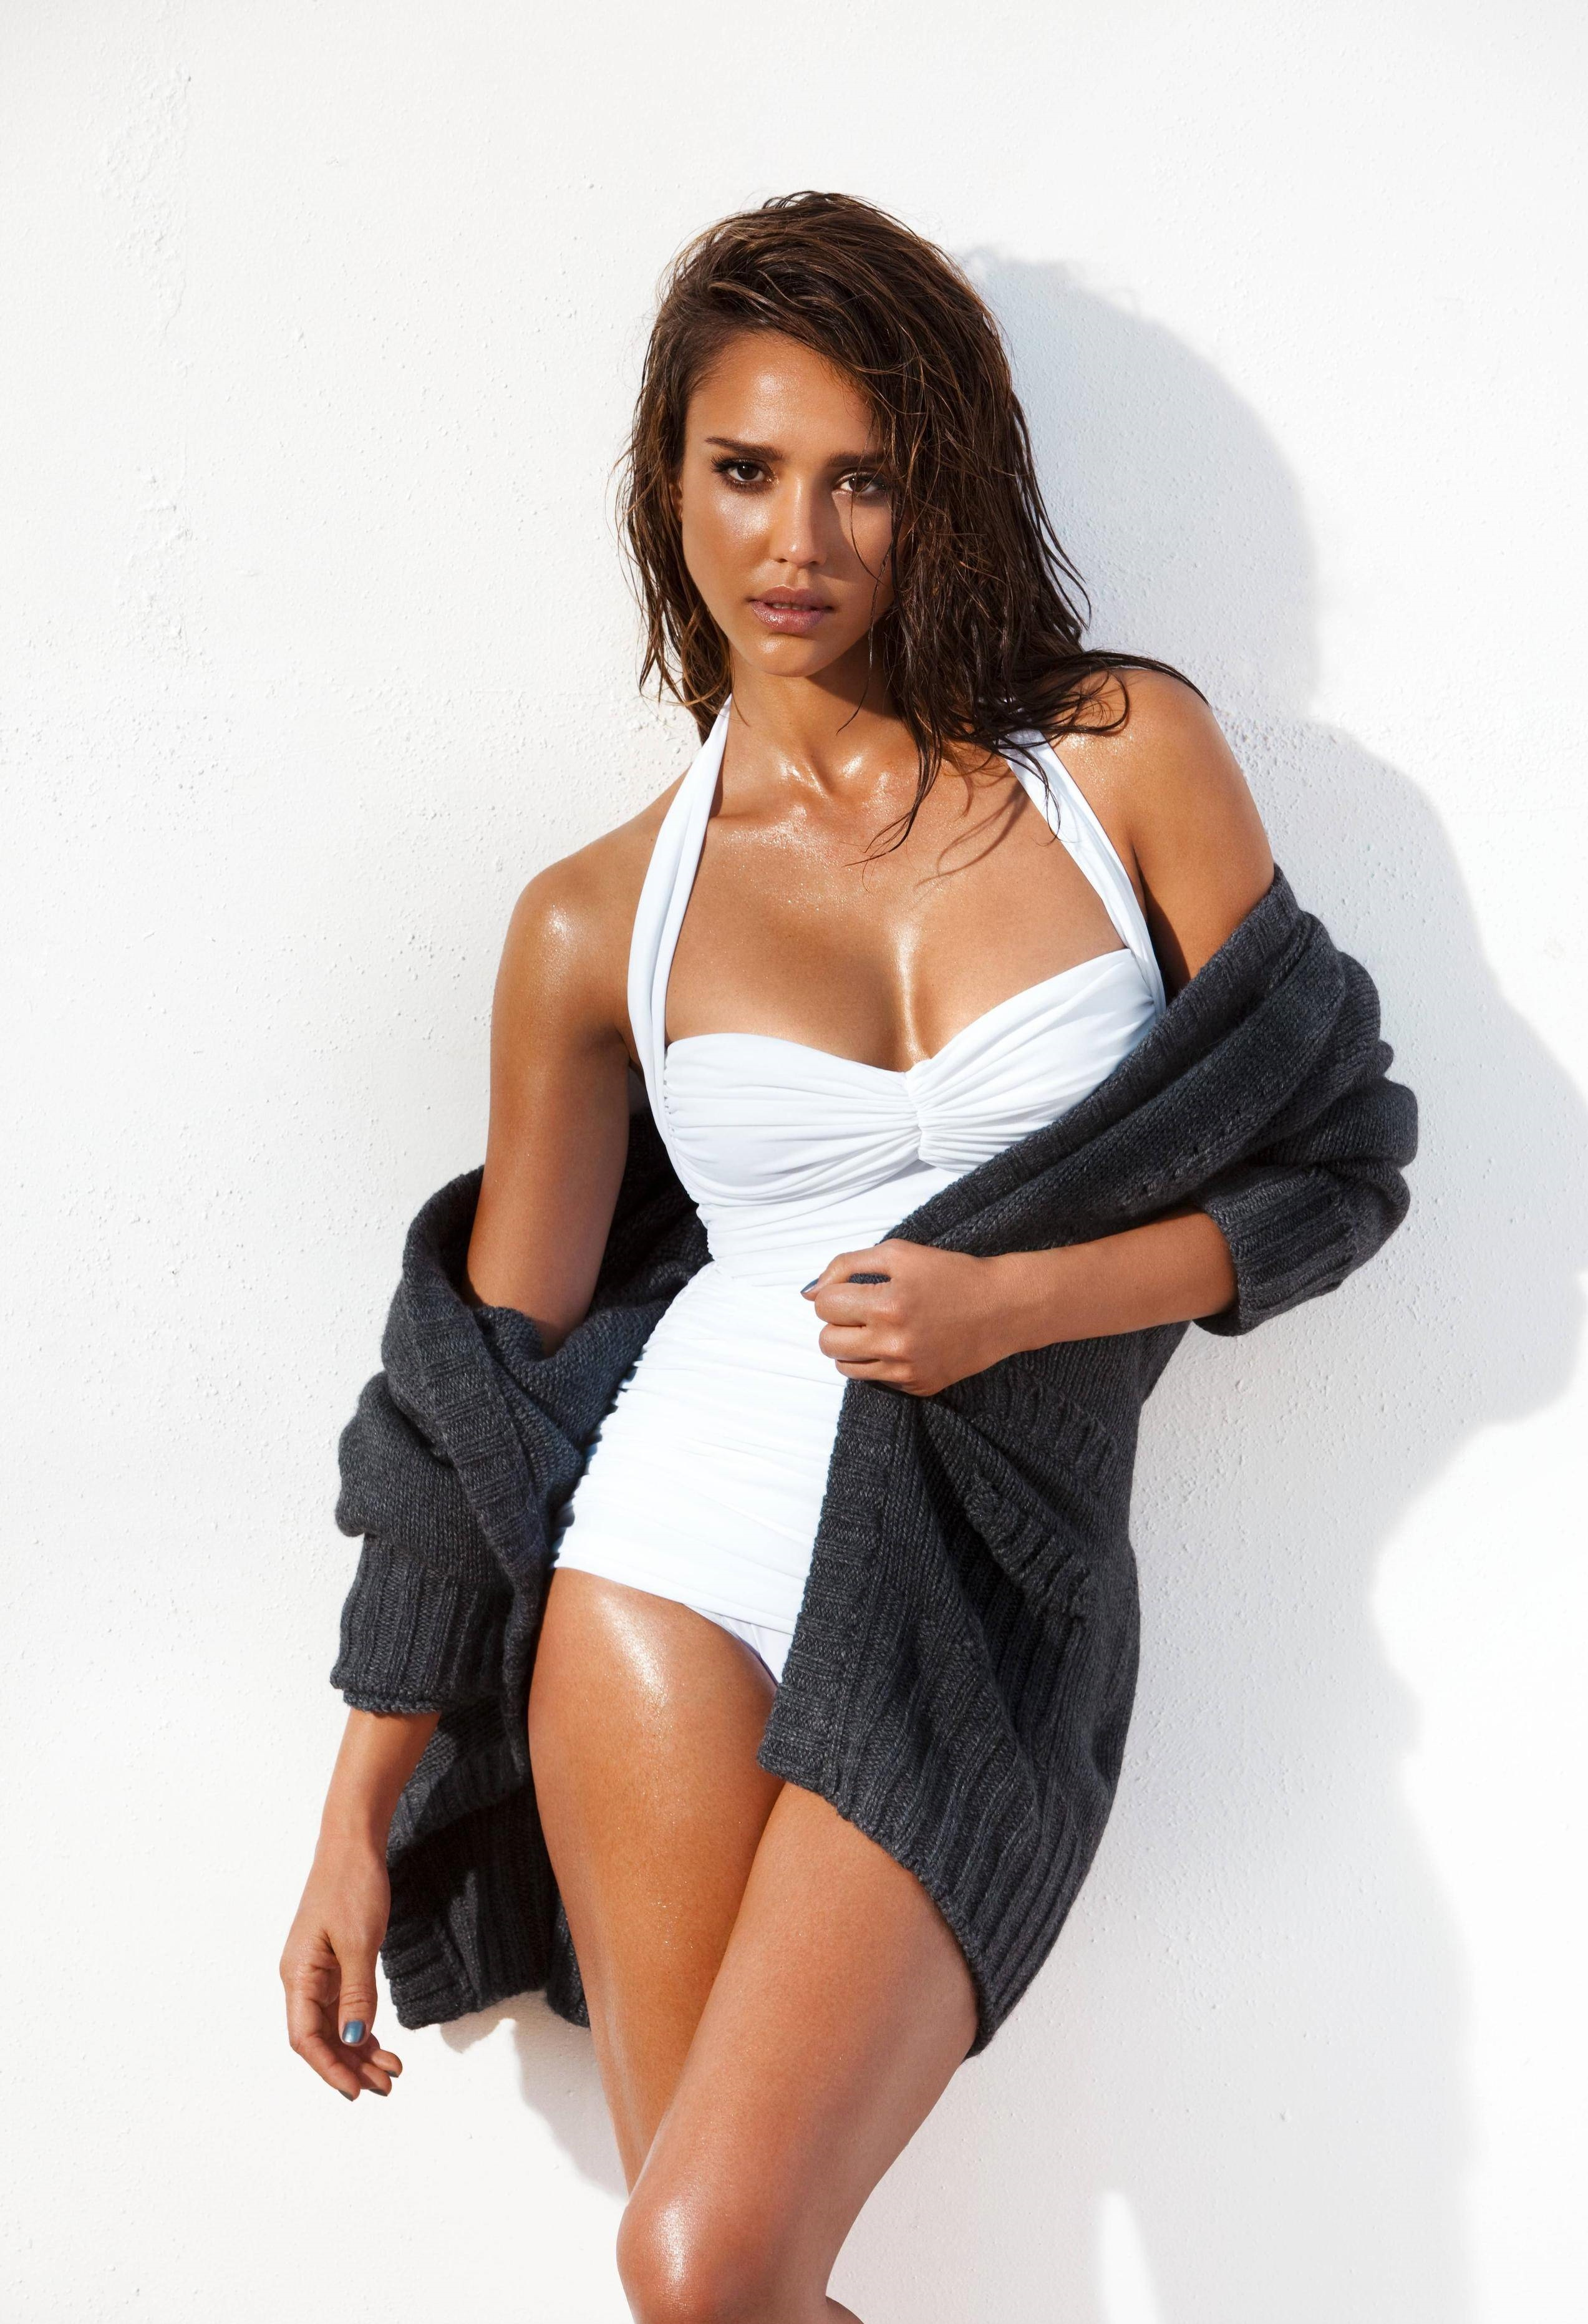 Jessica lucas naked